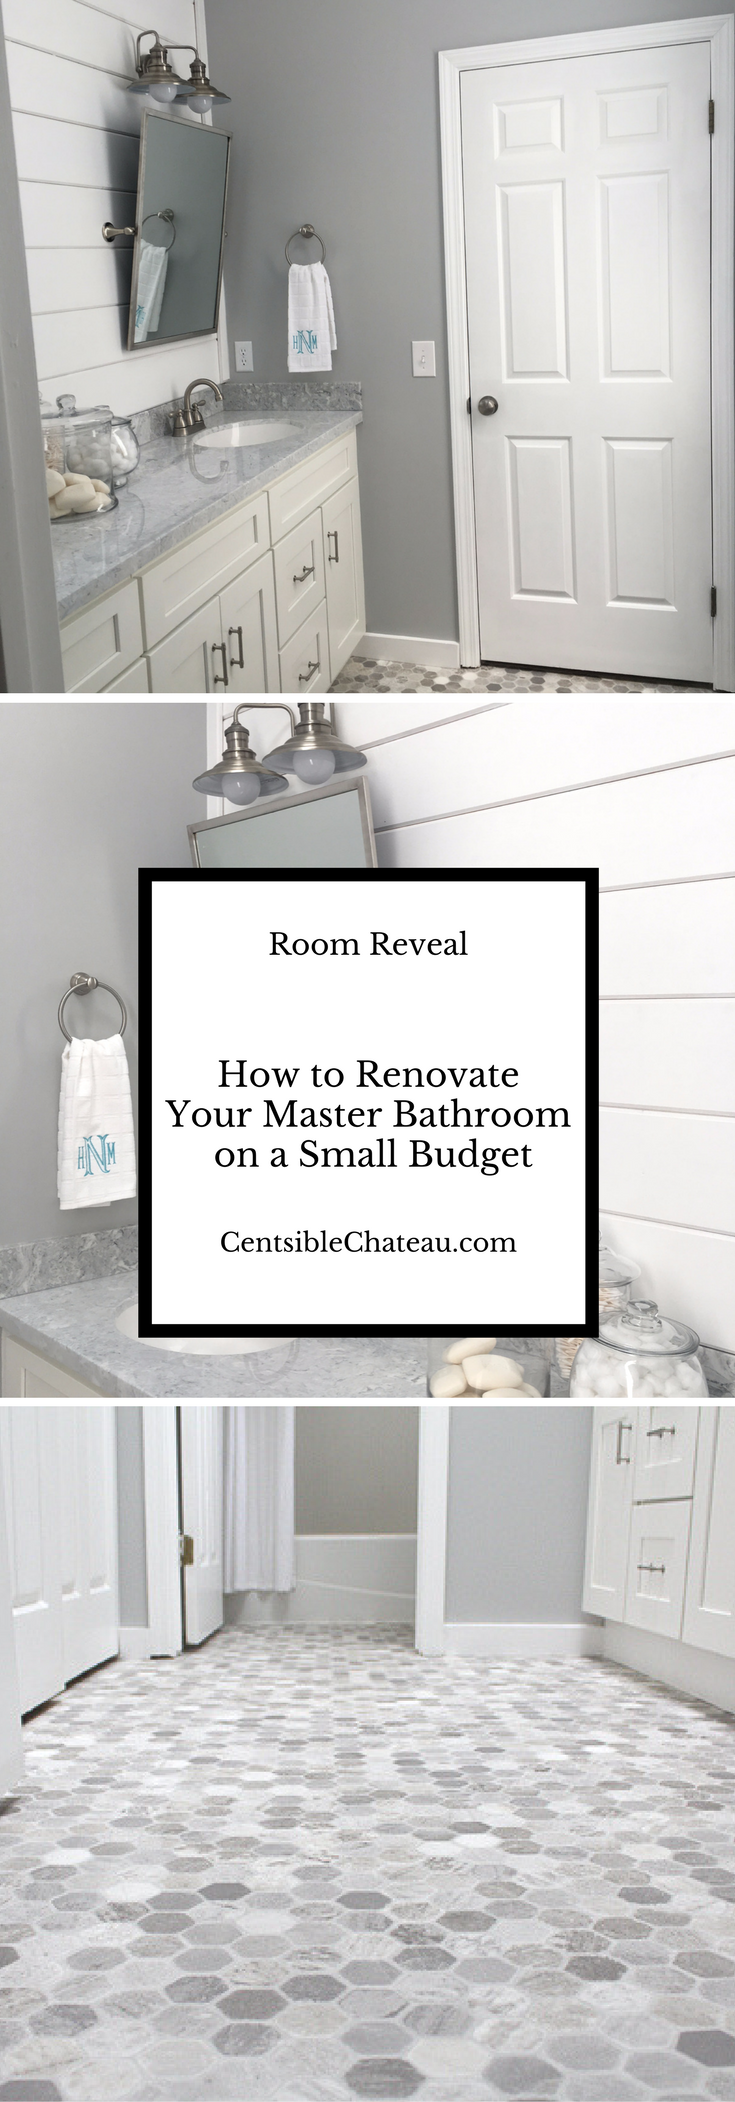 How To Remodel Your Master Bathroom On A Budget Pinterest Master - Upscale bathroom remodels